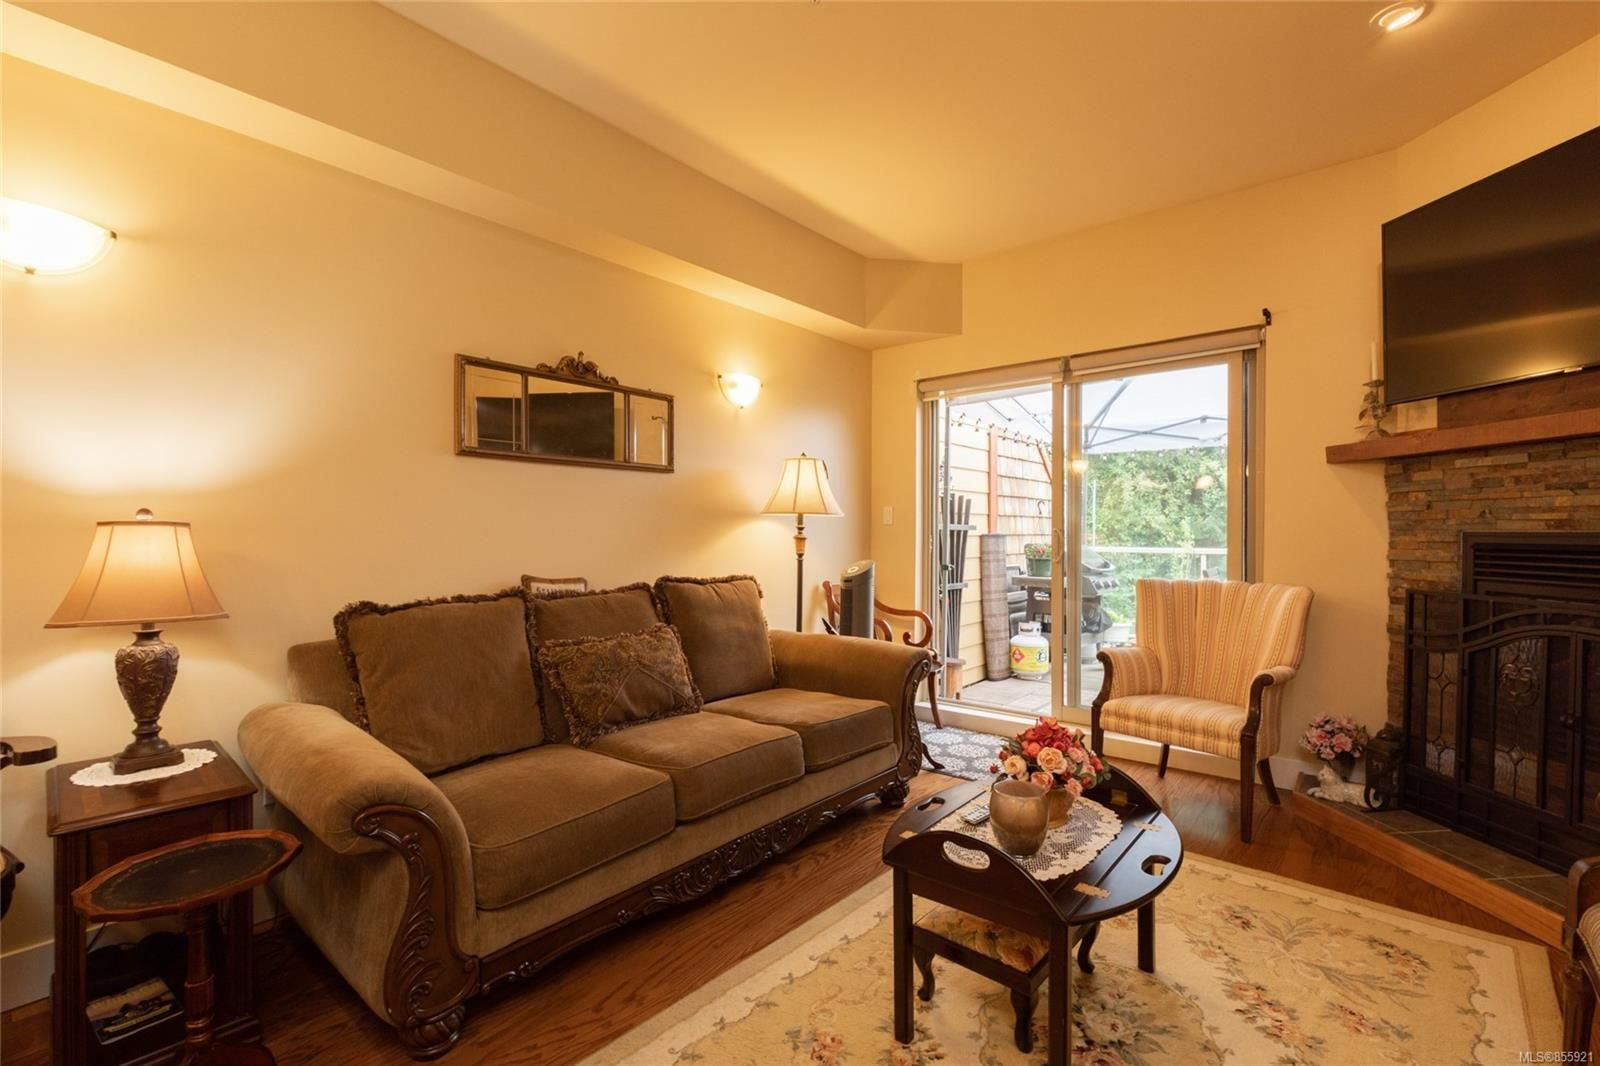 Photo 11: Photos: 206 1244 4TH Ave in : Du Ladysmith Row/Townhouse for sale (Duncan)  : MLS®# 855921